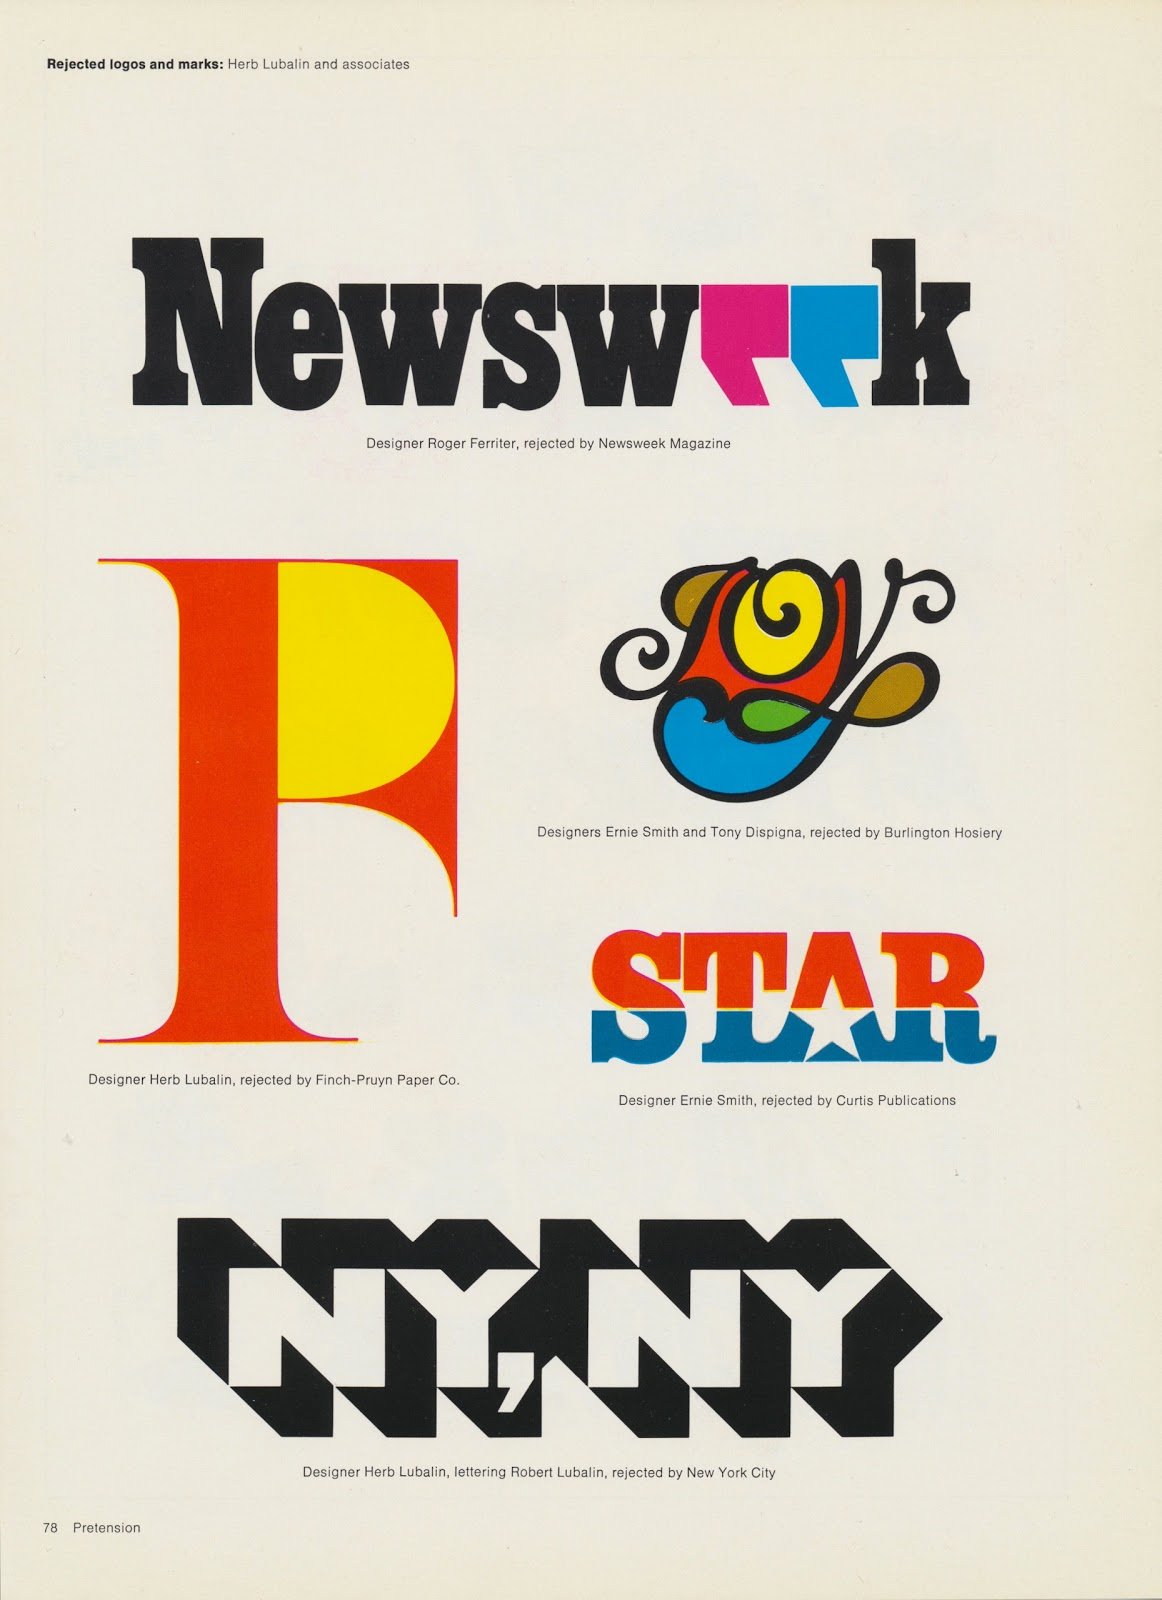 Tenth Letter Of The Alphabet Creator Herb Lubalin Part 8